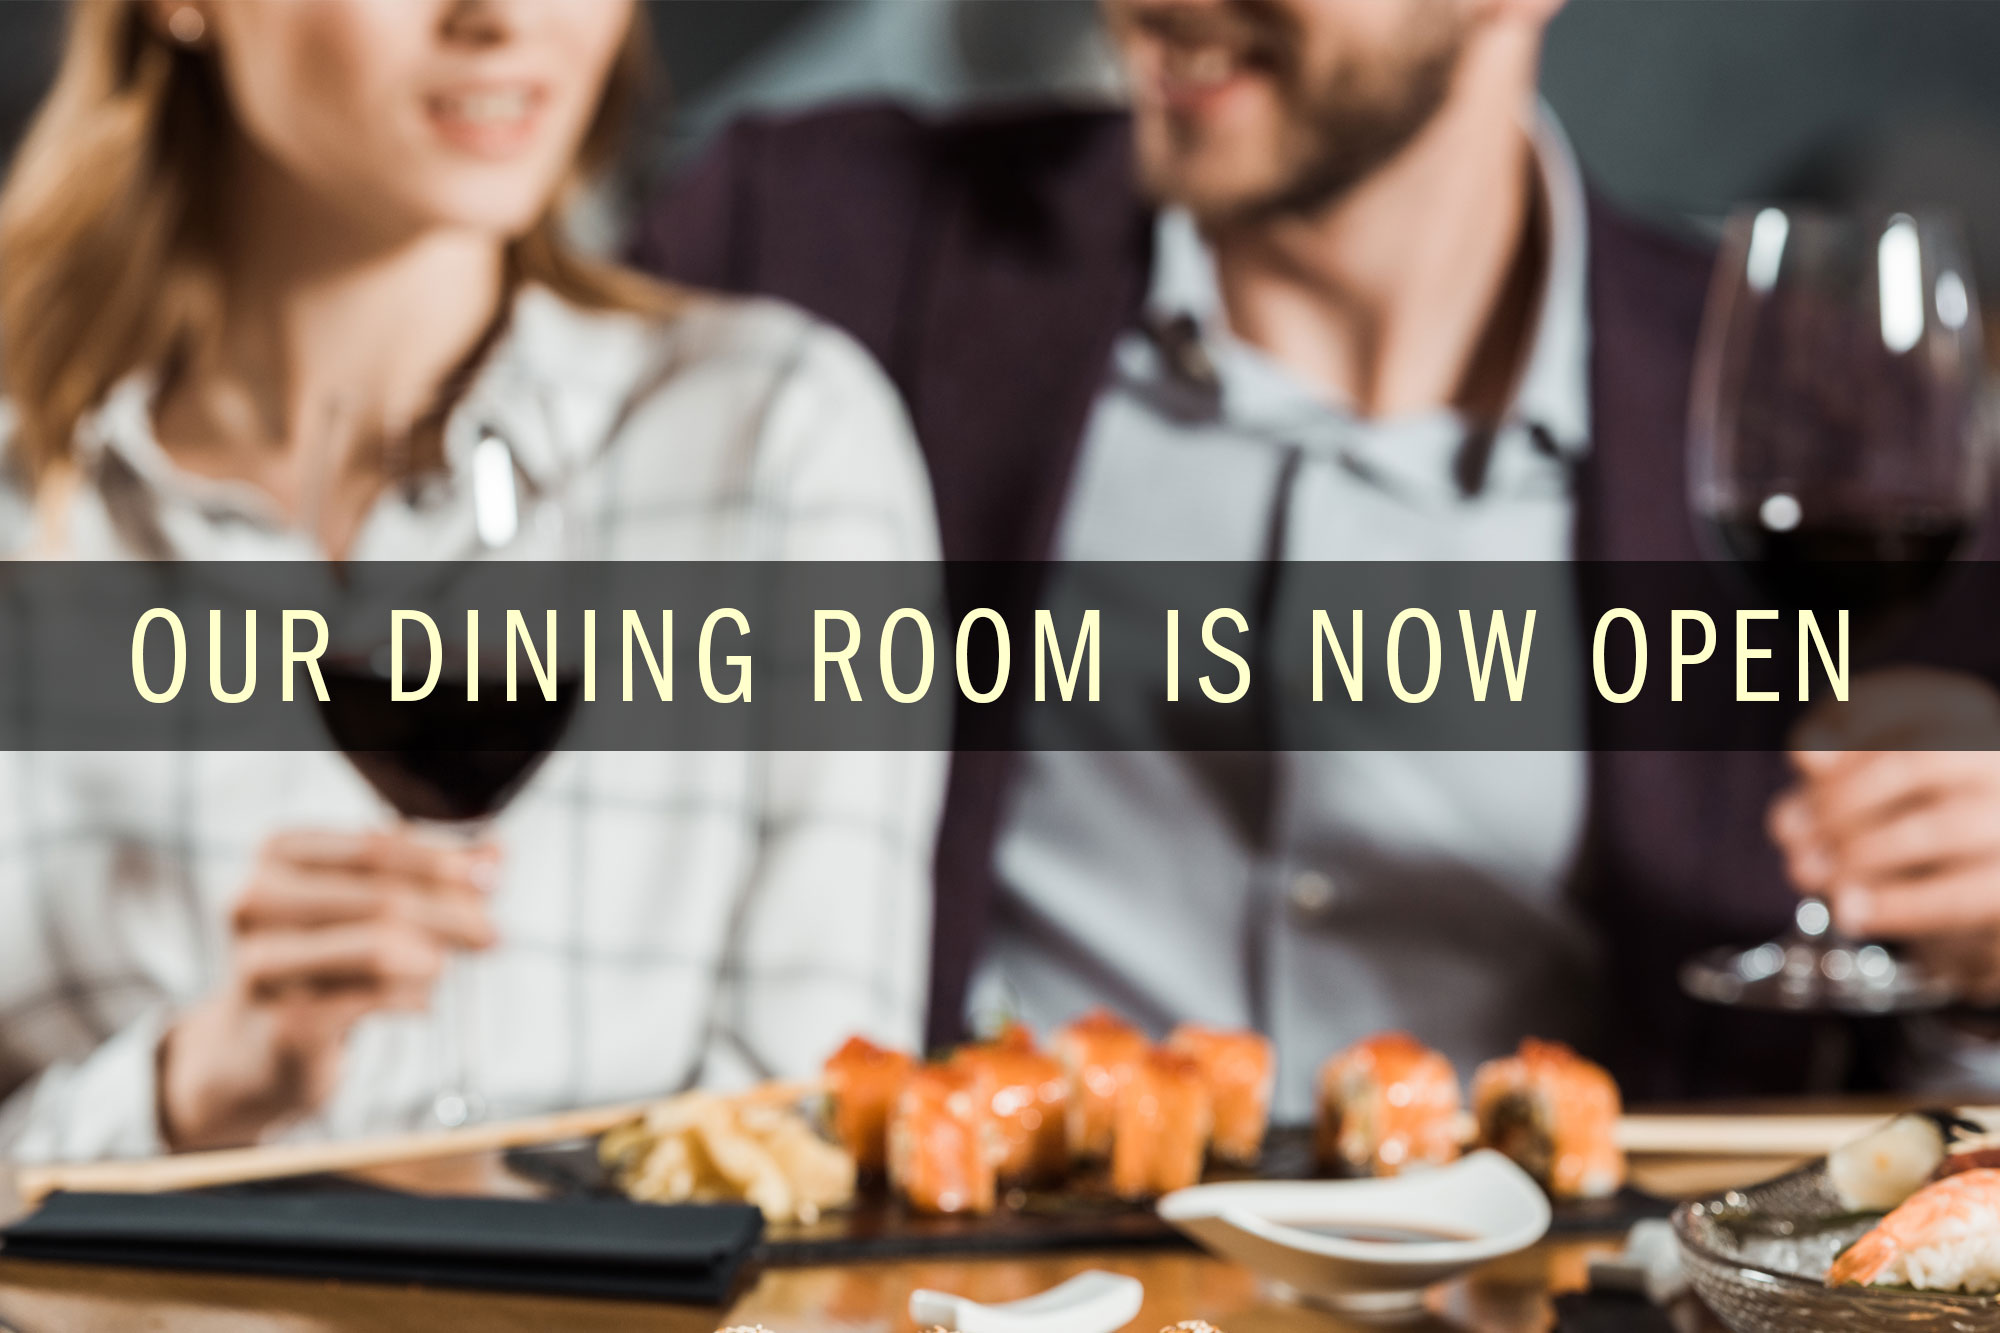 Komoon Dining Areas Now Open